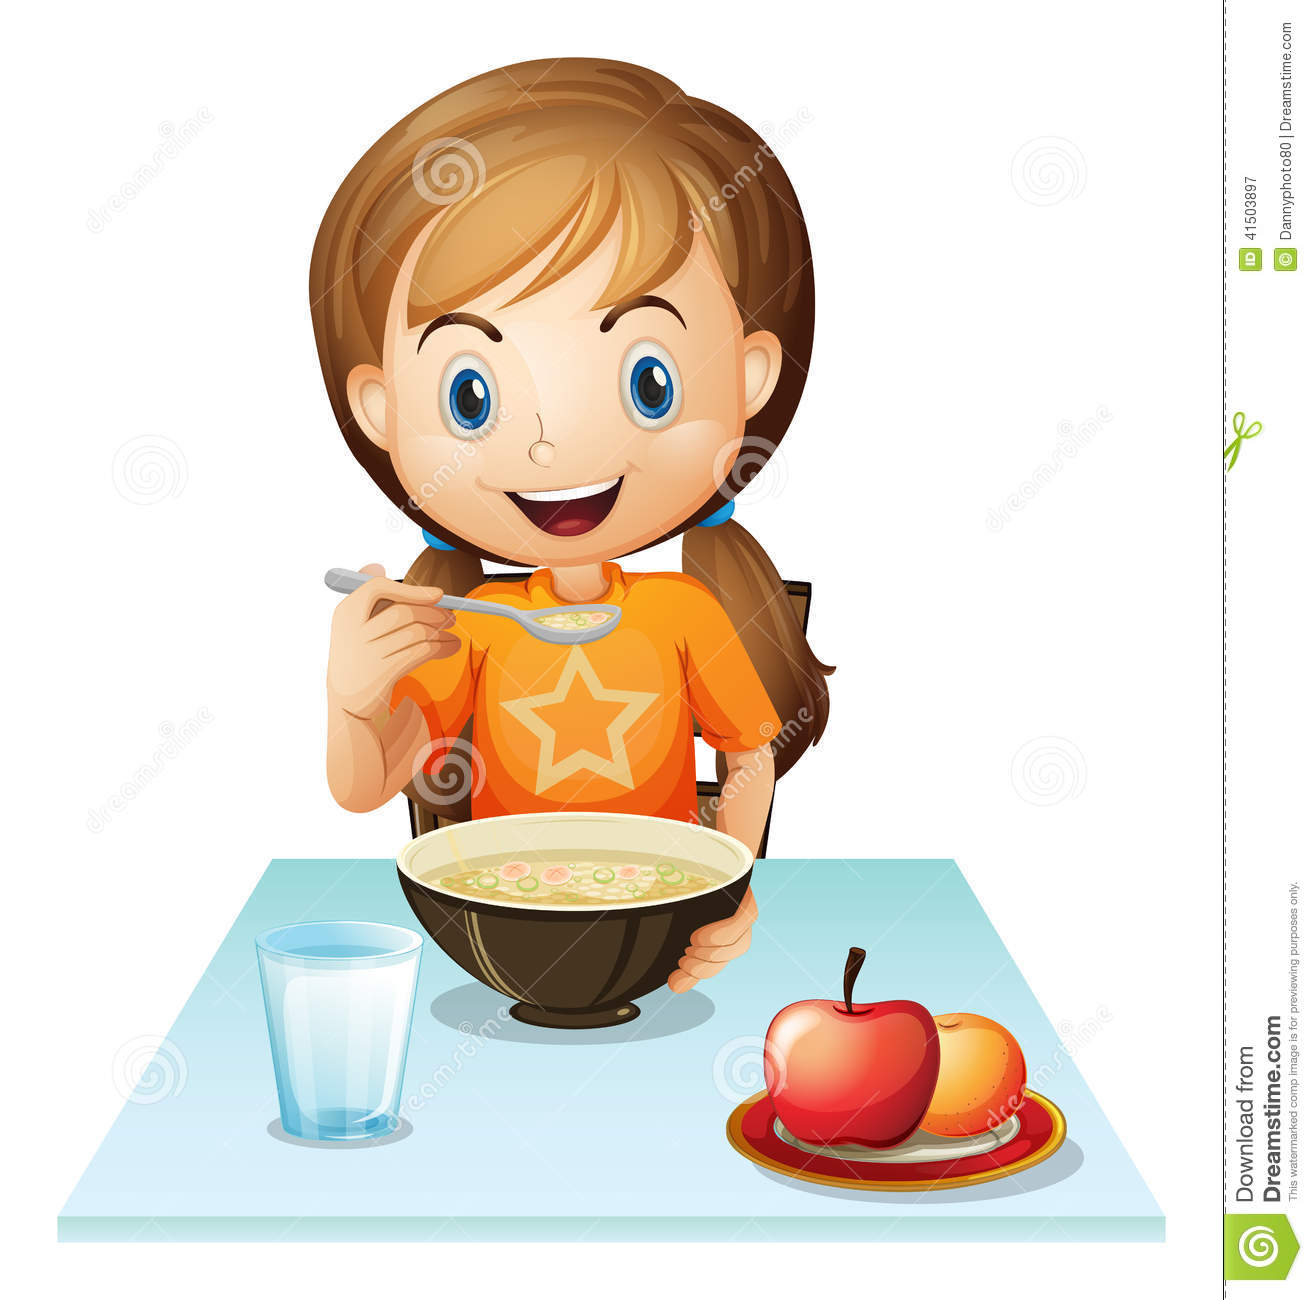 clipart girl eating breakfast - photo #22